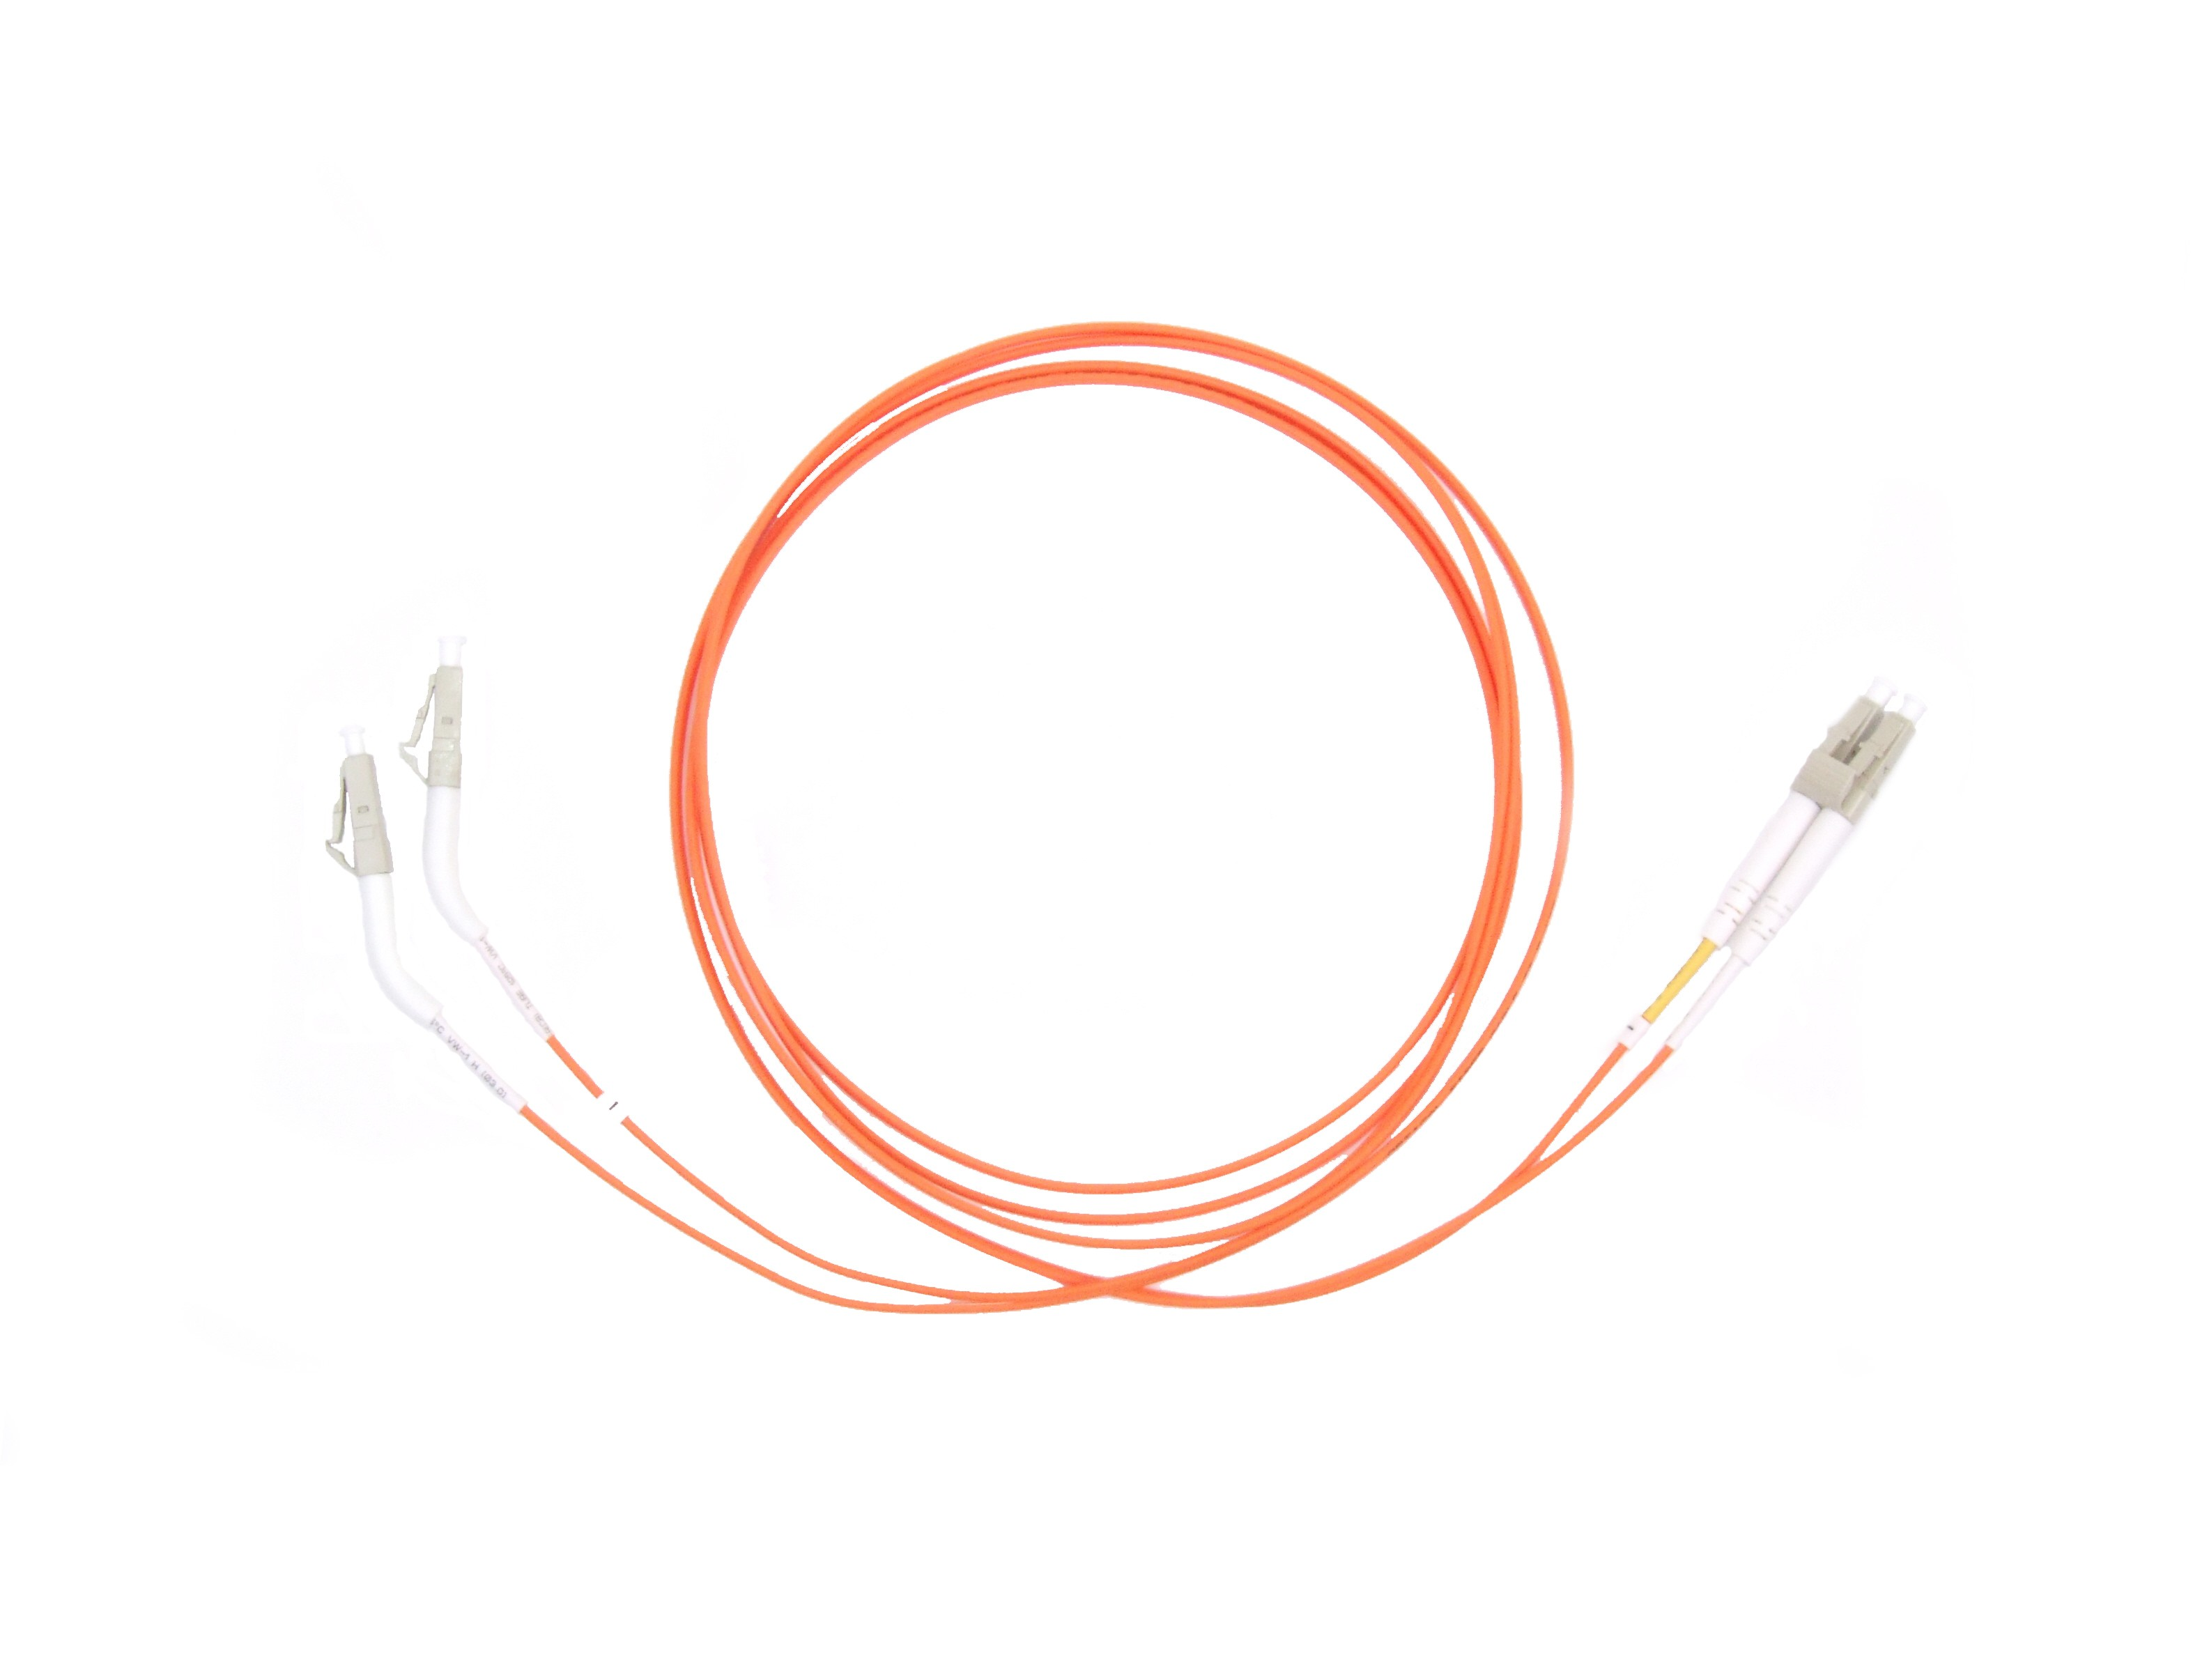 LC 45 deg boot - LC Multimode fibre patch cord OM1 Duplex 10m